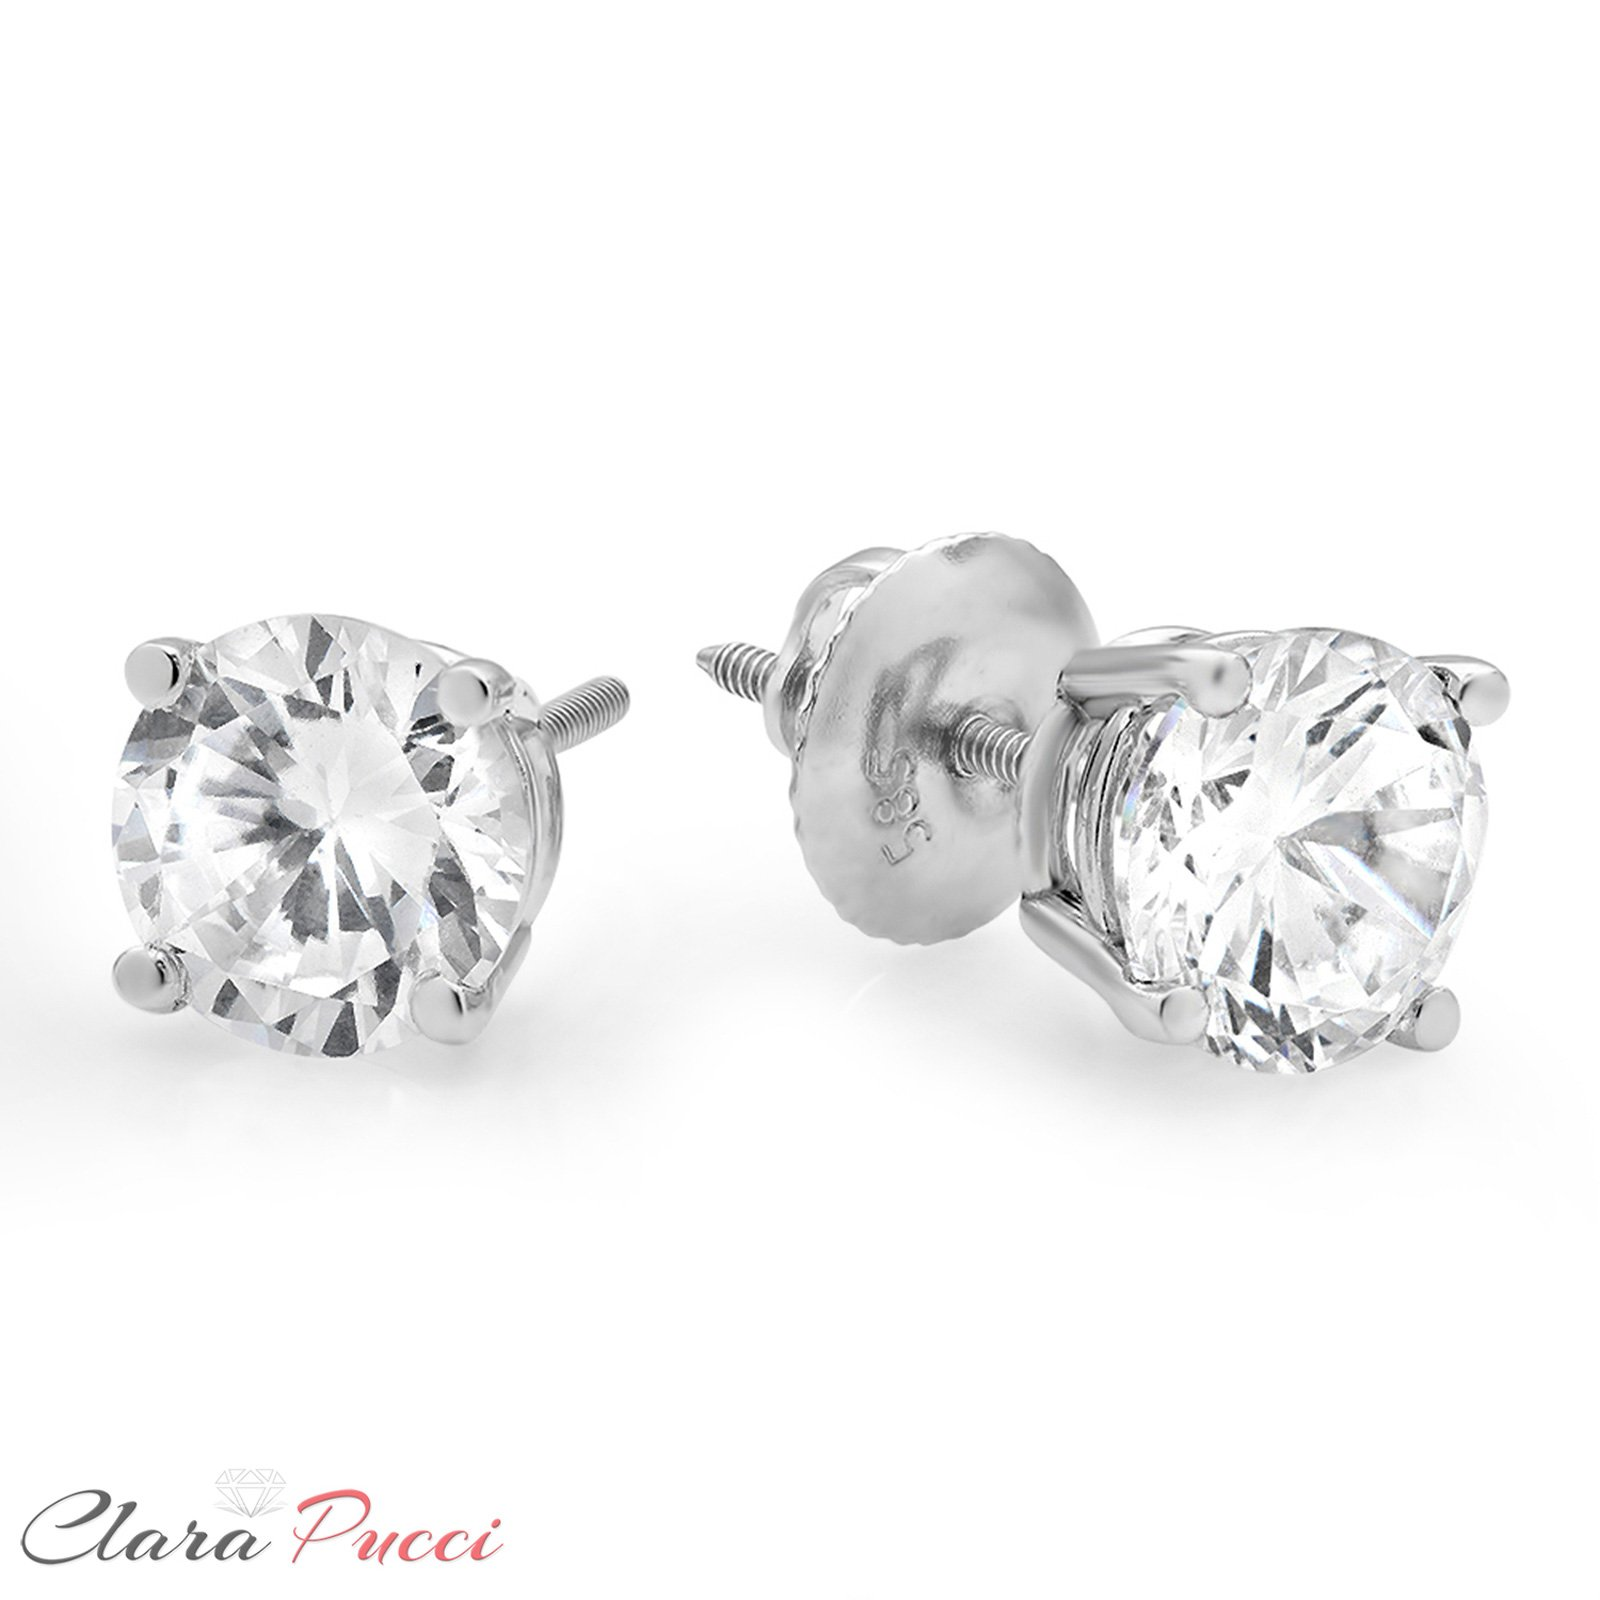 1.50 ct Brilliant Round Cut Solitaire Highest Quality Moissanite Ideal VVS1 D Anniversary gift Stud Earrings Real Solid 14k White Gold Screw Back by Clara Pucci (Image #7)